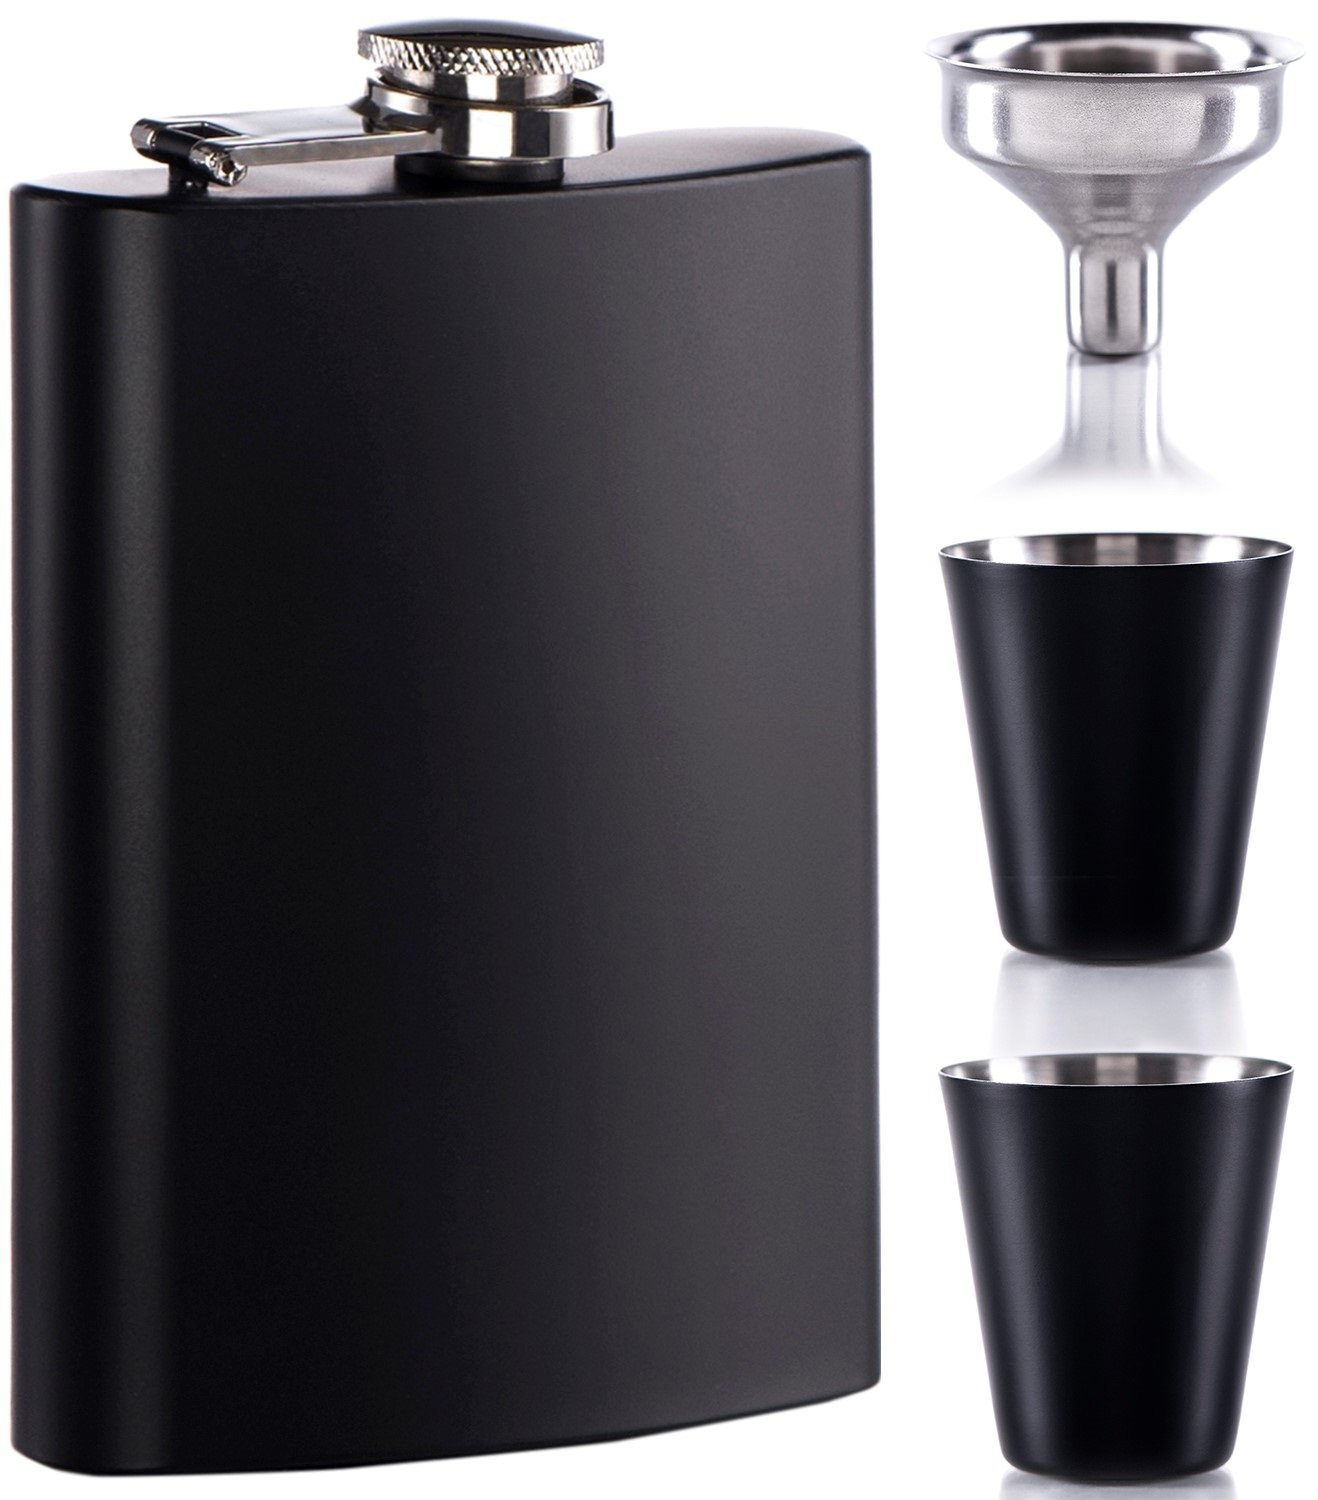 8 oz Black Flask with Shot Glass for Liquor for Men Metal Stainless Steel Flasks by Murkon (Image #1)